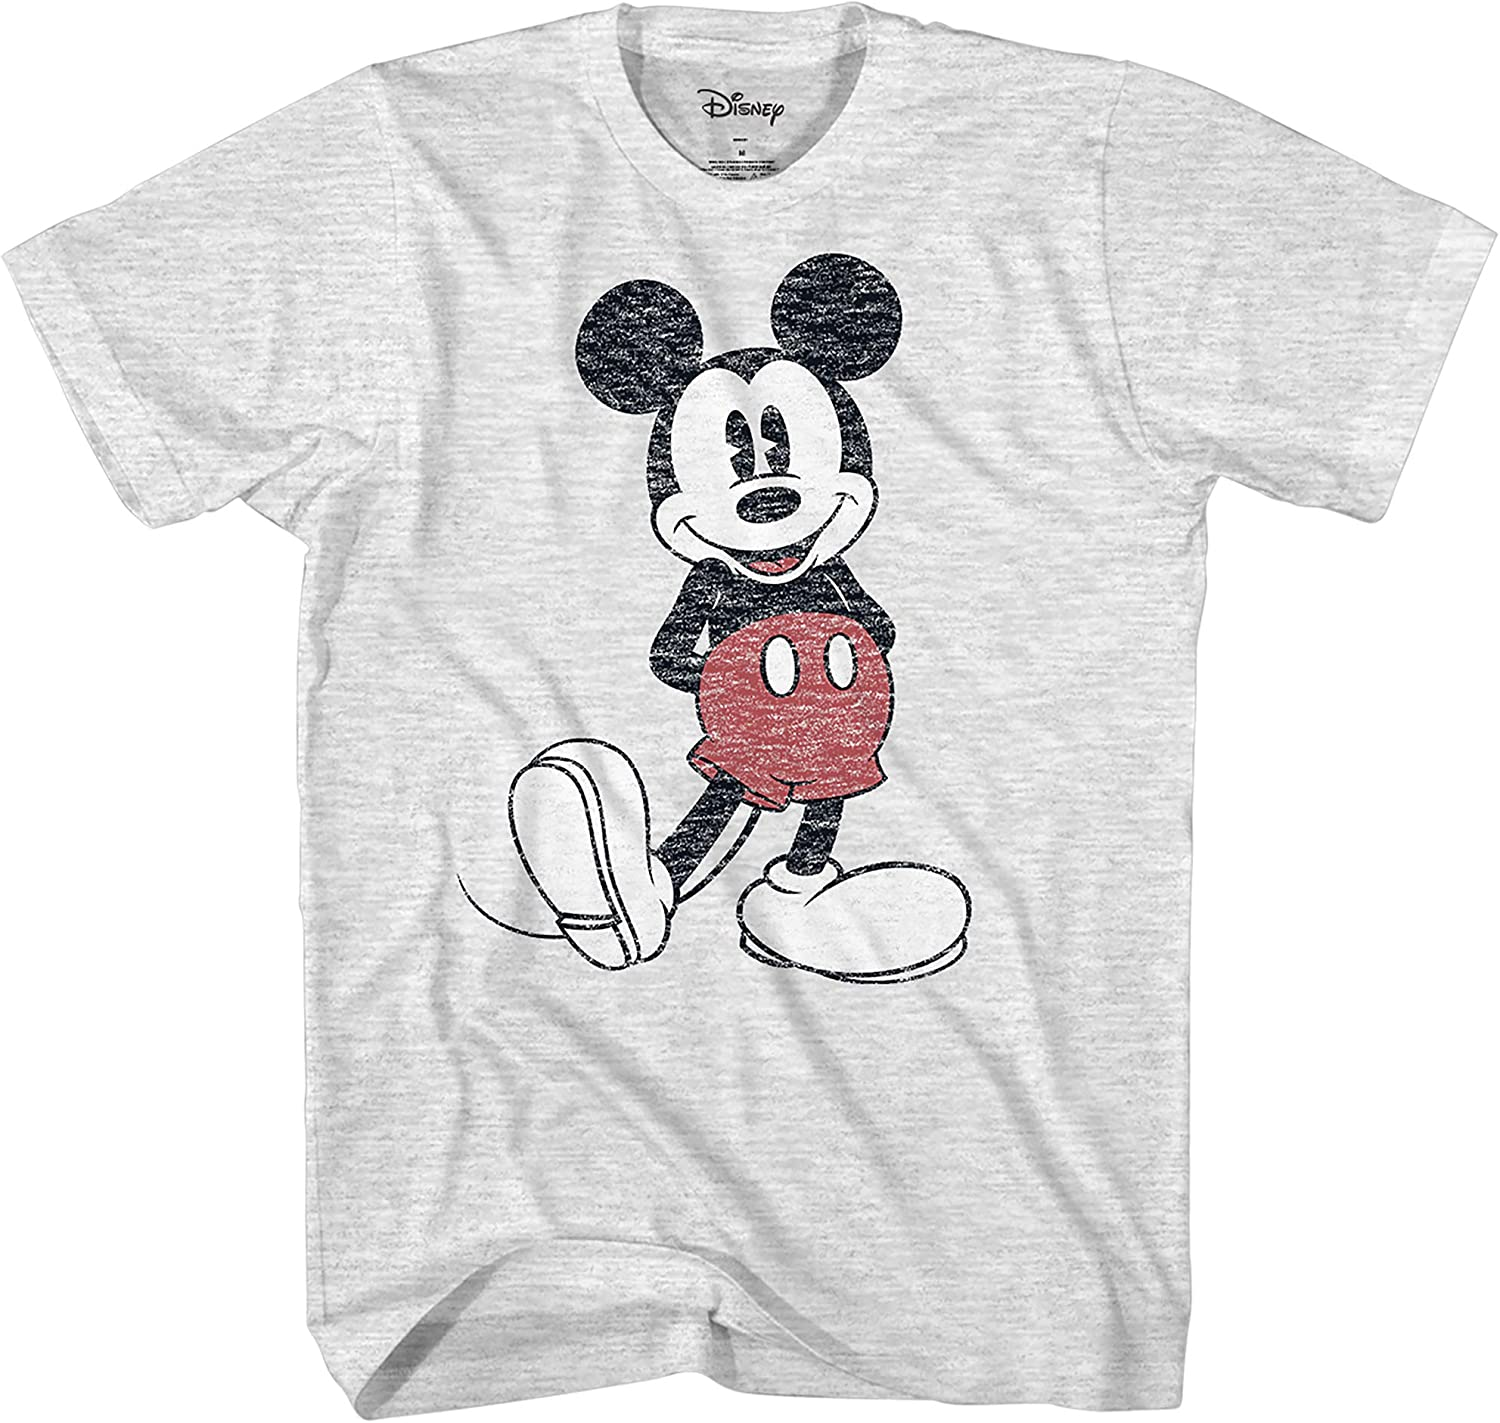 Disney Homme Mickey Mouse Distressed visage Lavé T-Shirt